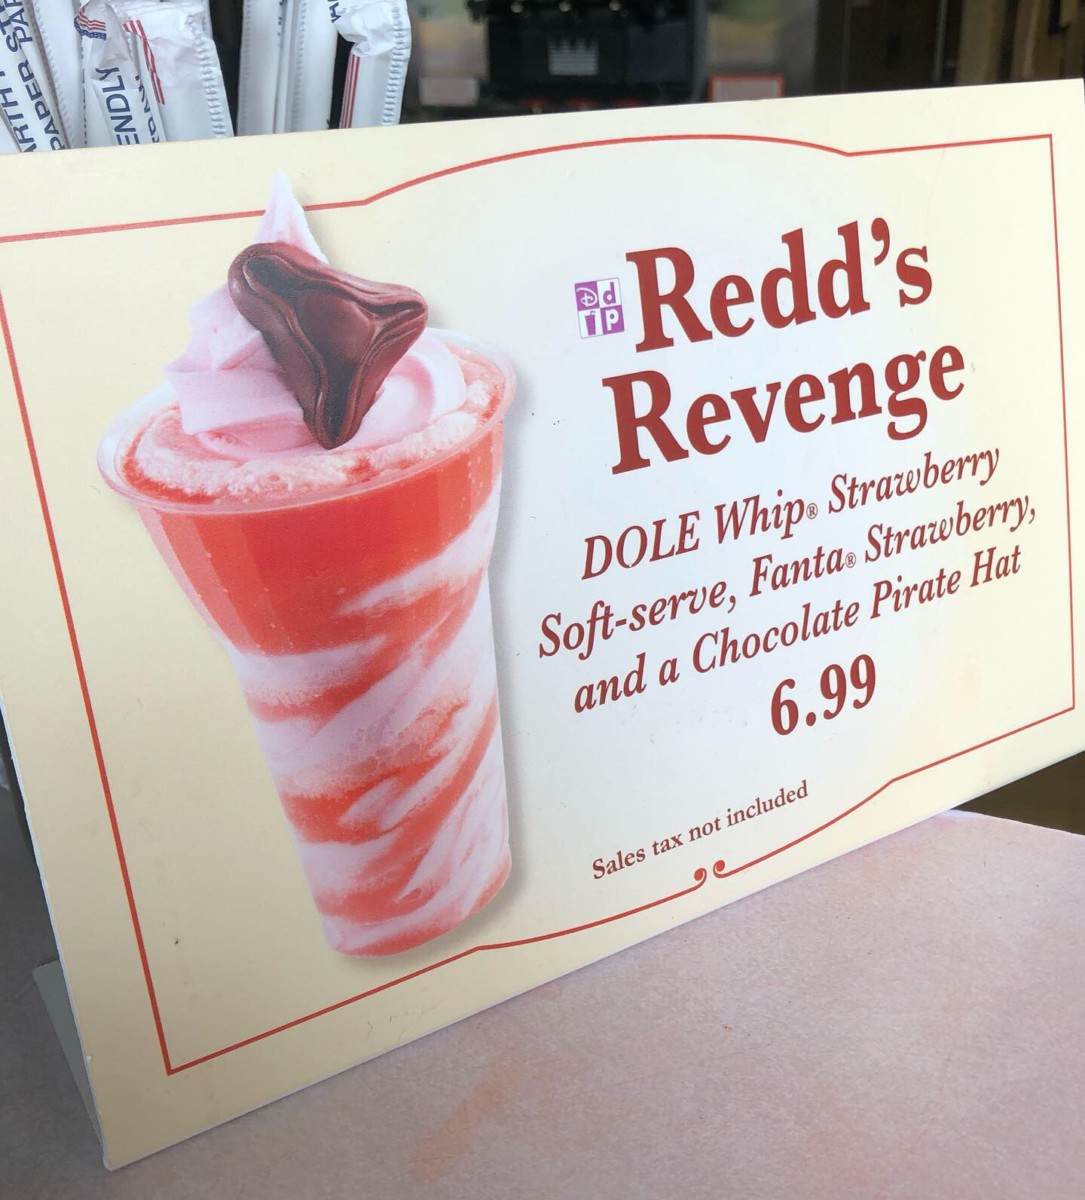 Redd's Revenge Float... With Chocolate! #magickingdom 2